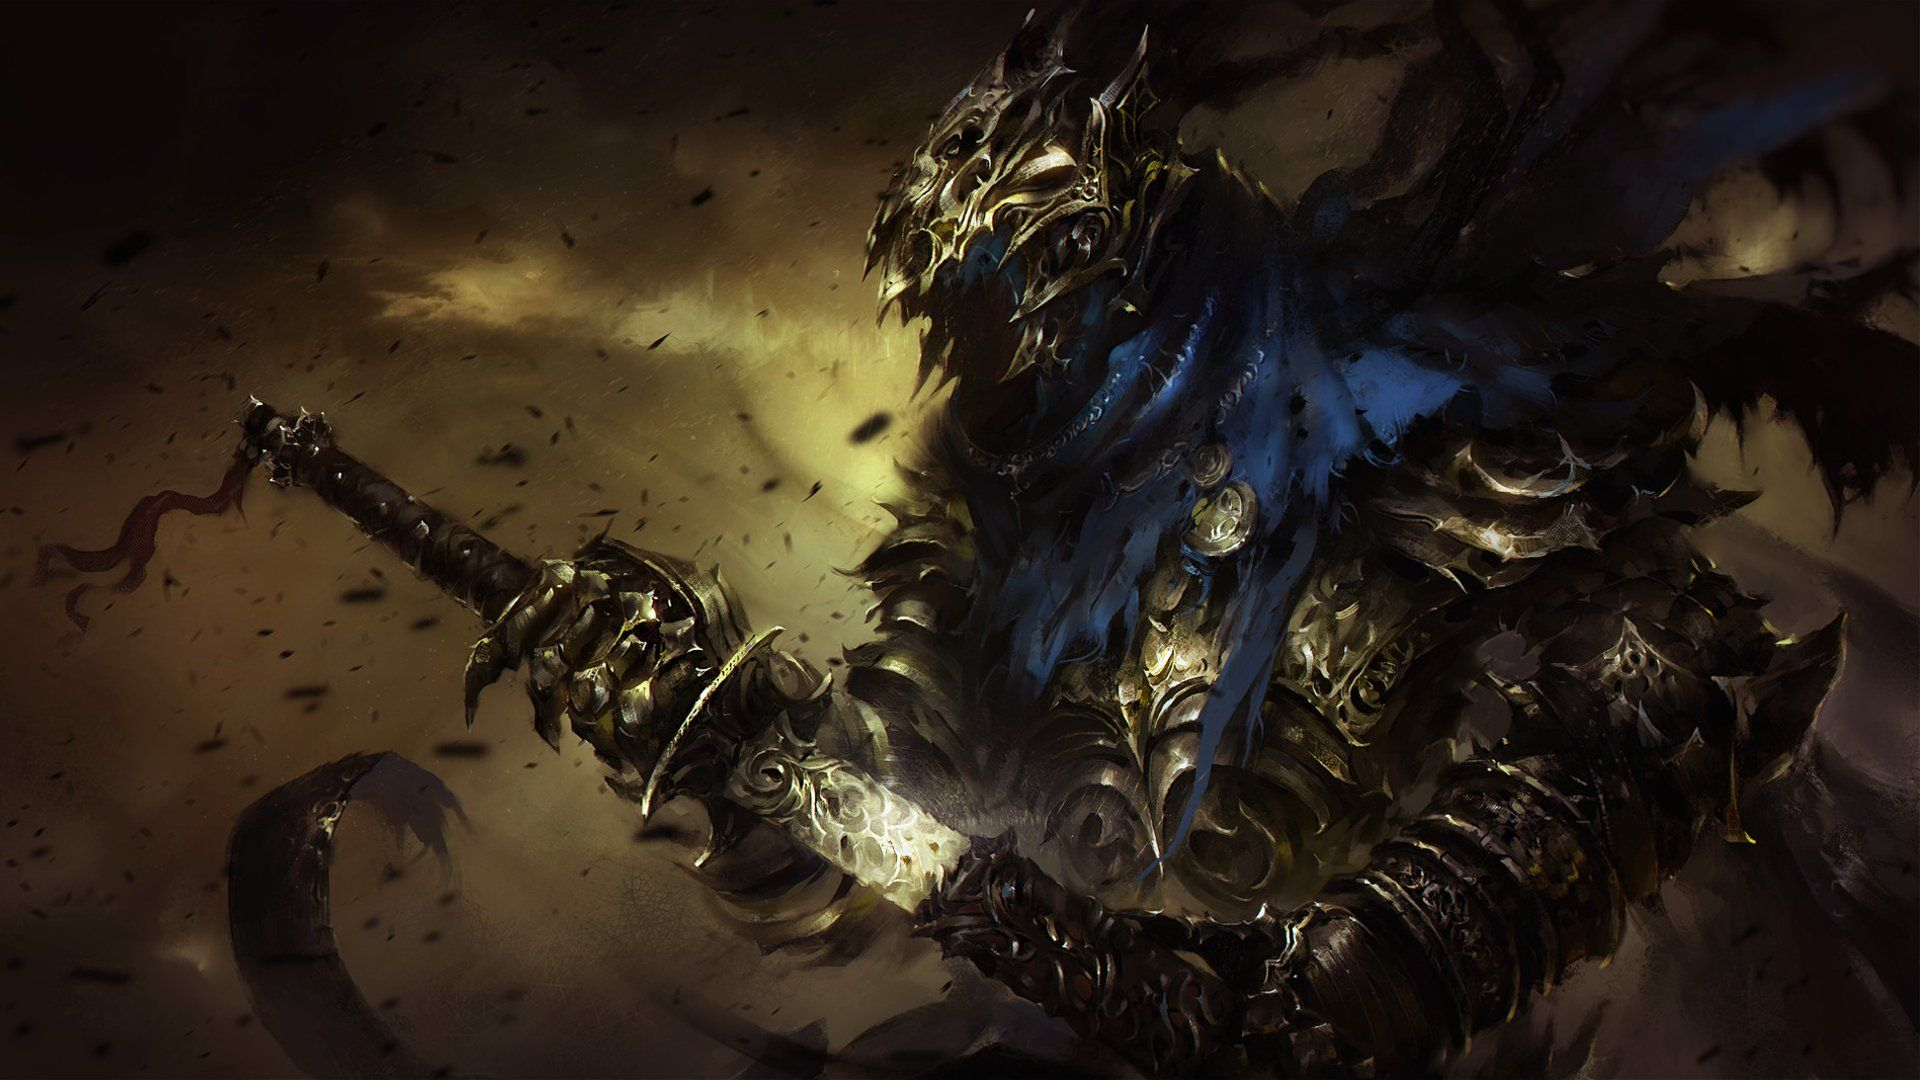 Artorias Of The Abyss Video Game Dark Souls Artorias Dark Souls Wallpaper Dark Souls Artorias Dark Souls Wallpaper Dark Souls